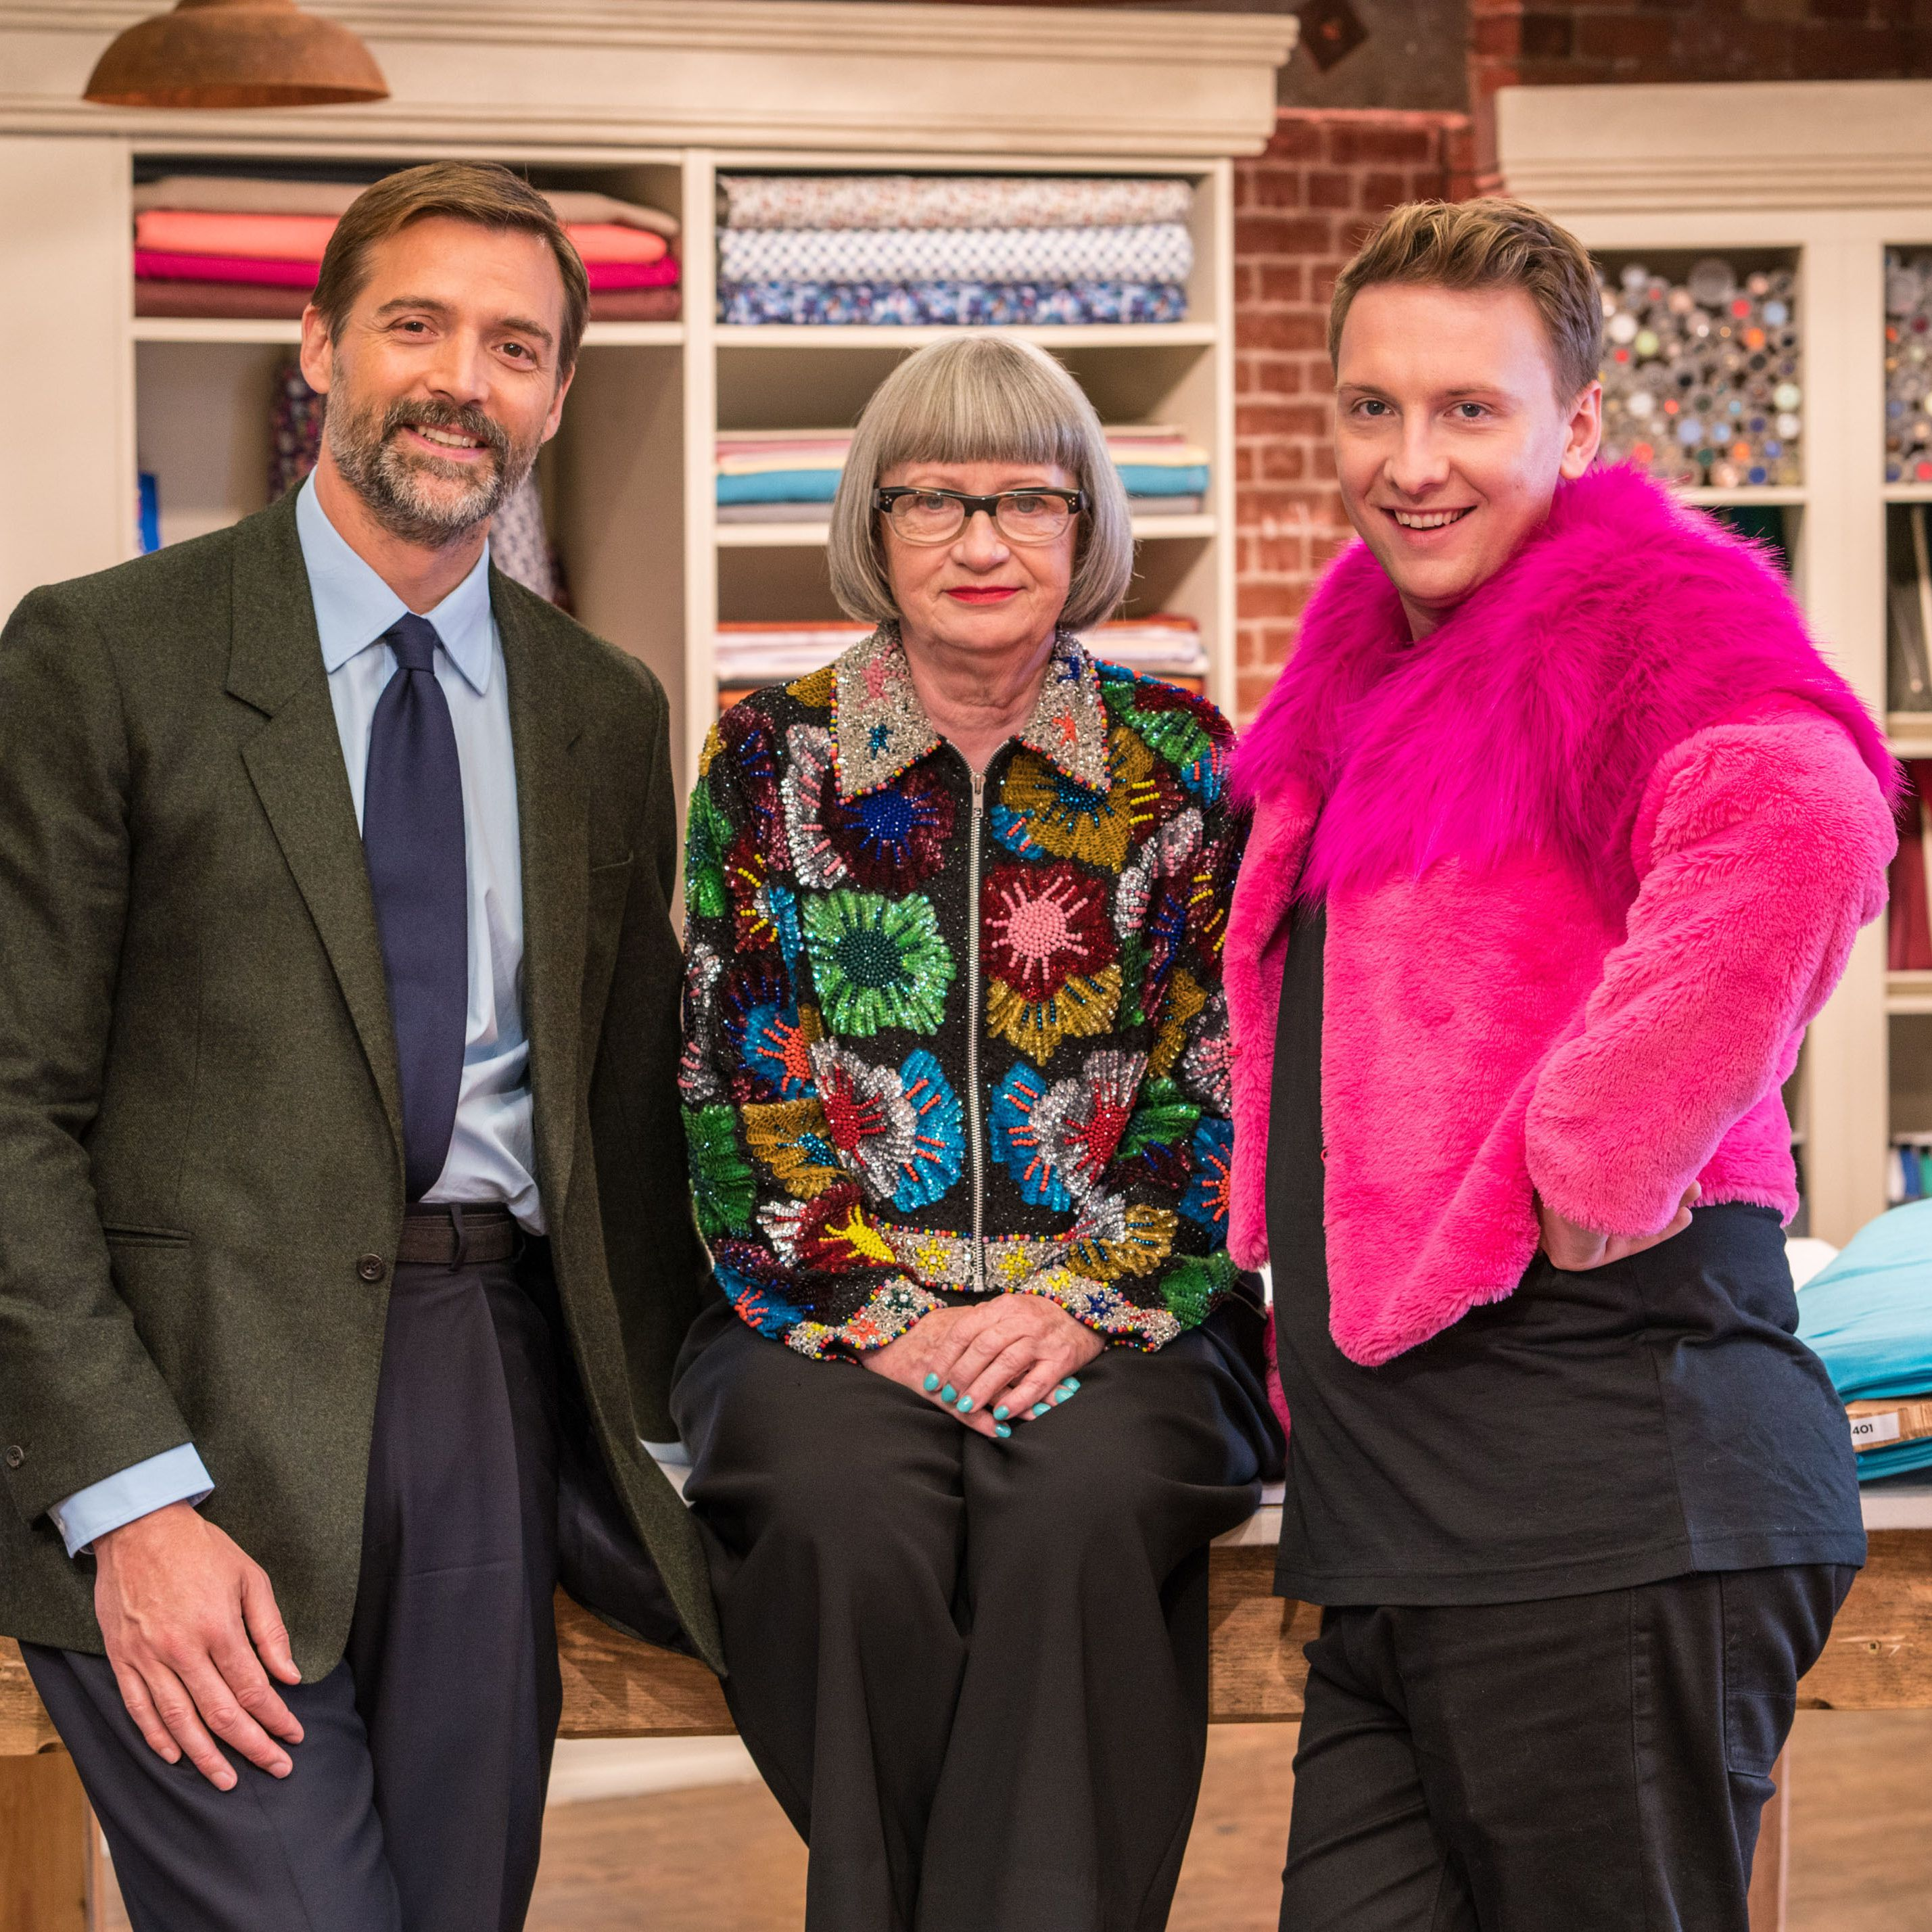 The Great British Sewing Bee viewers give their verdict on new host Joe Lycett